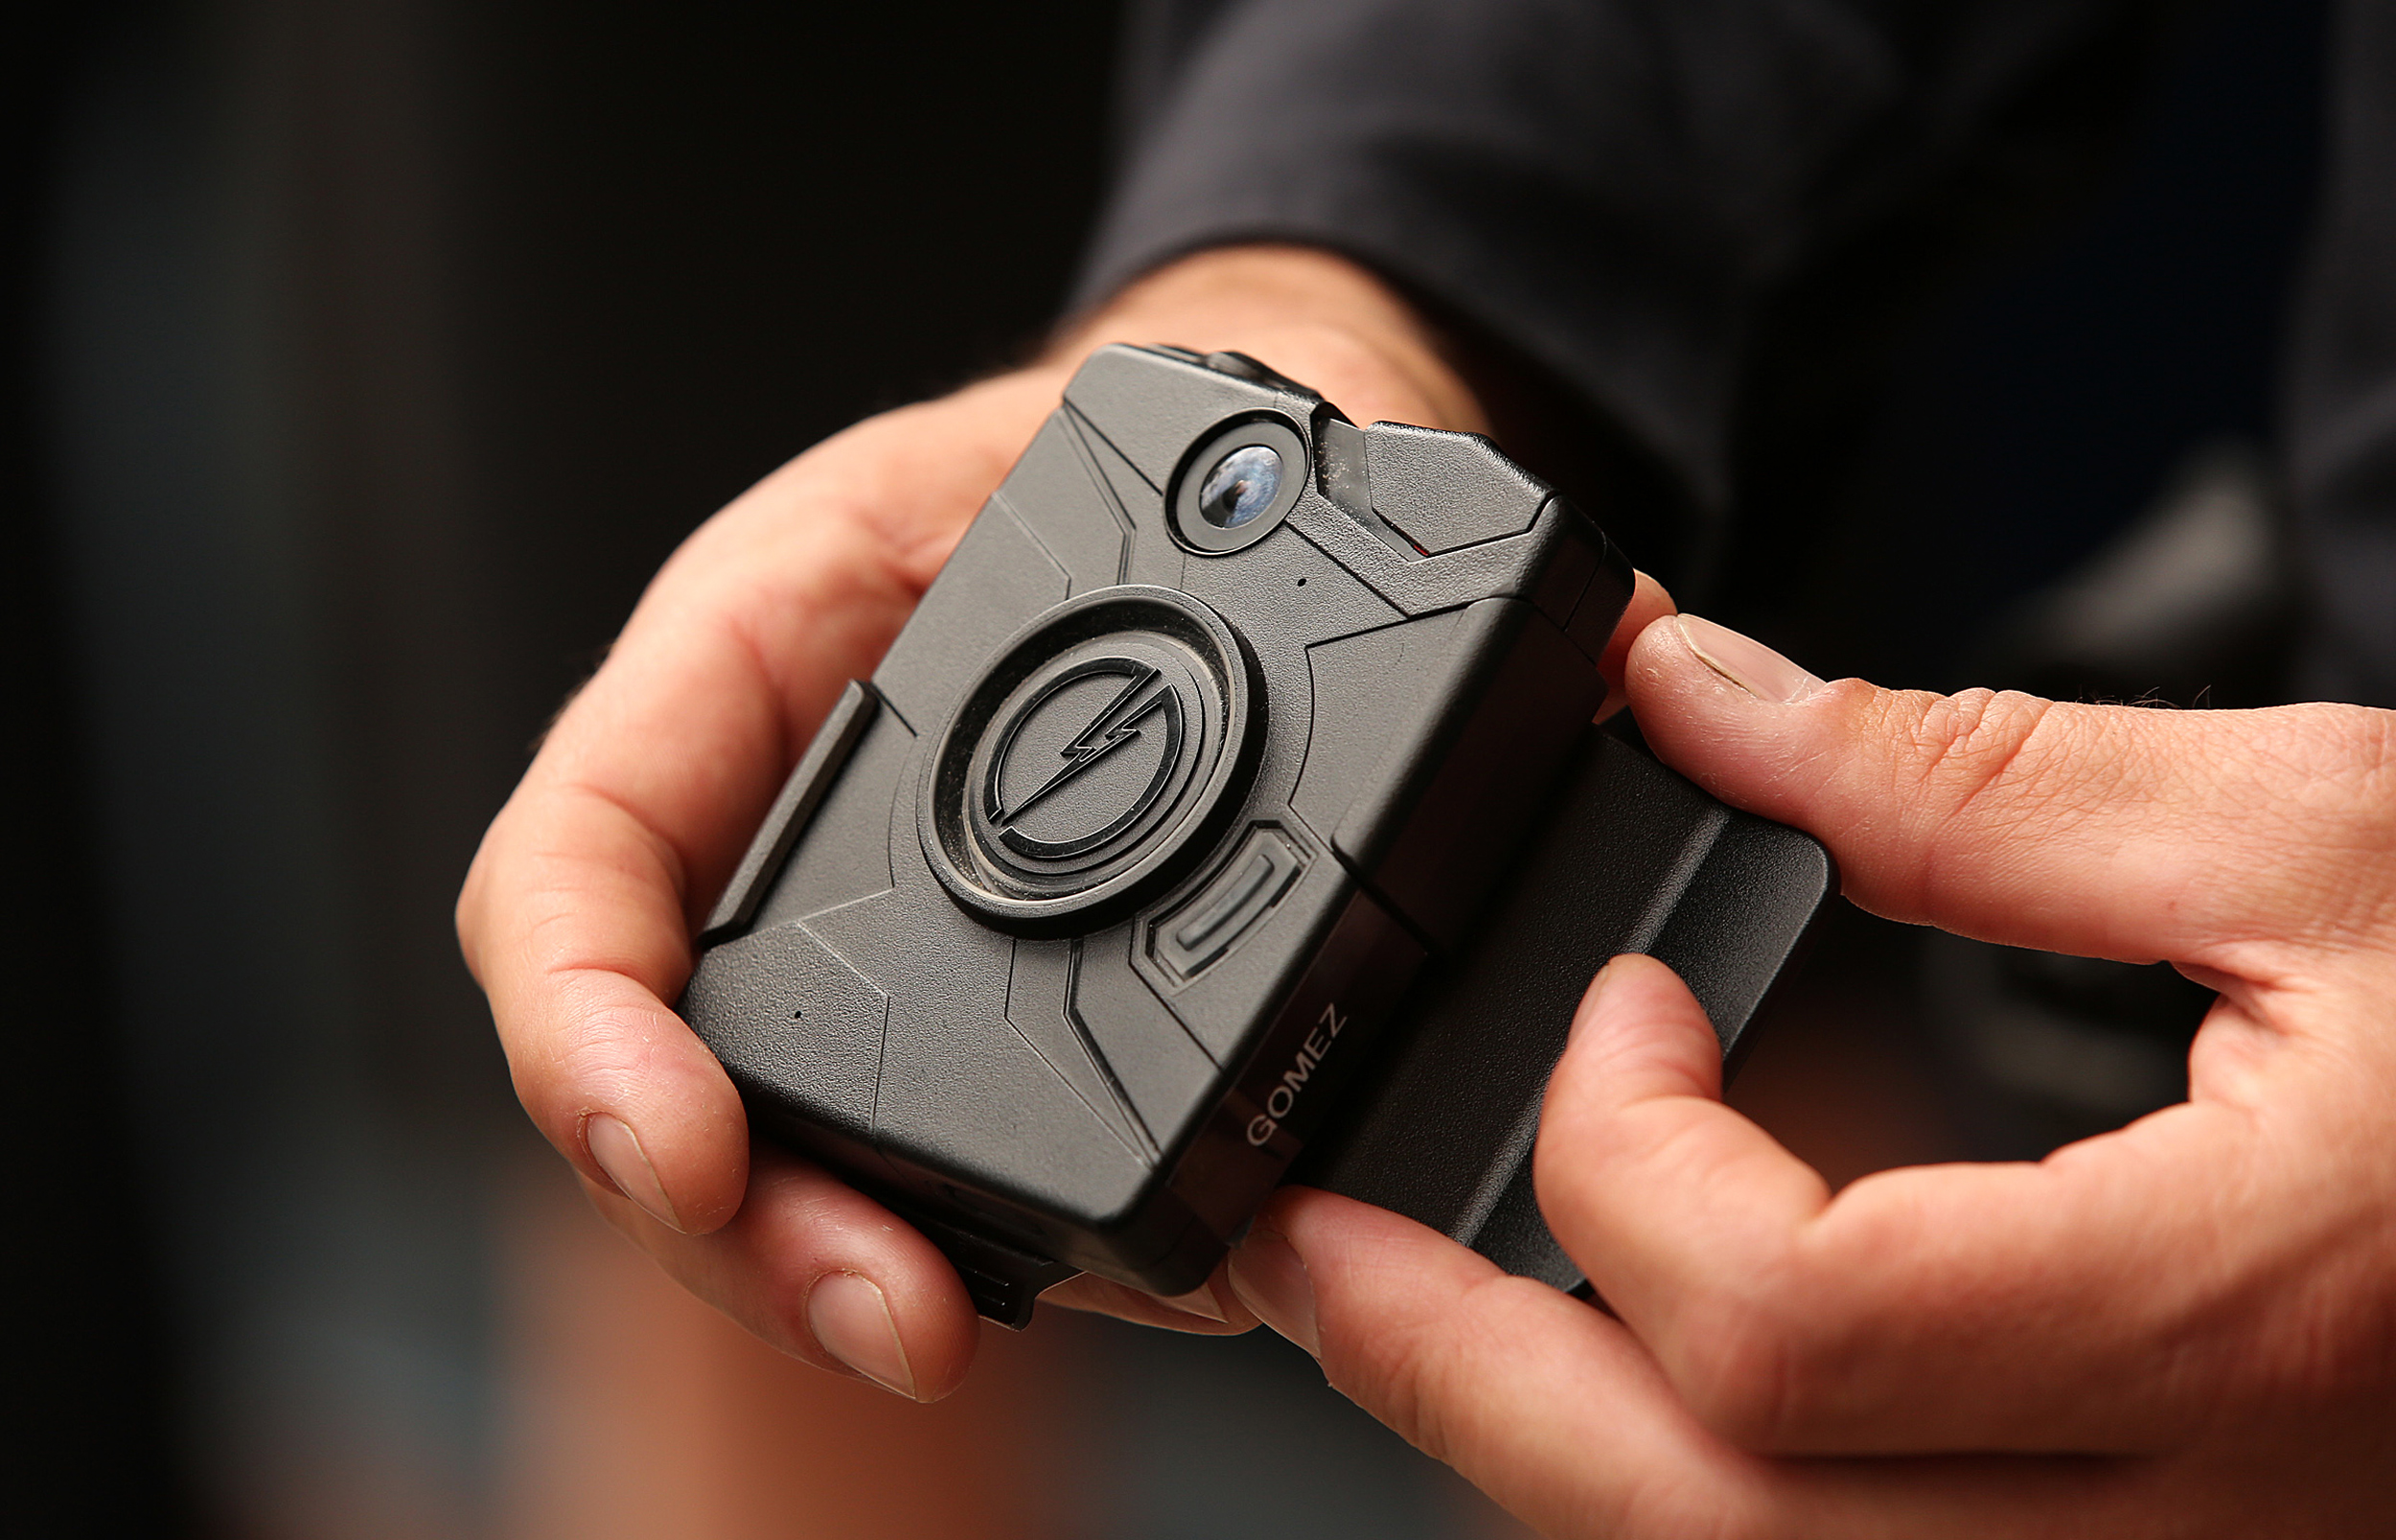 Facing revolt from police chiefs, U.S. Marshals agree to change body camera rules